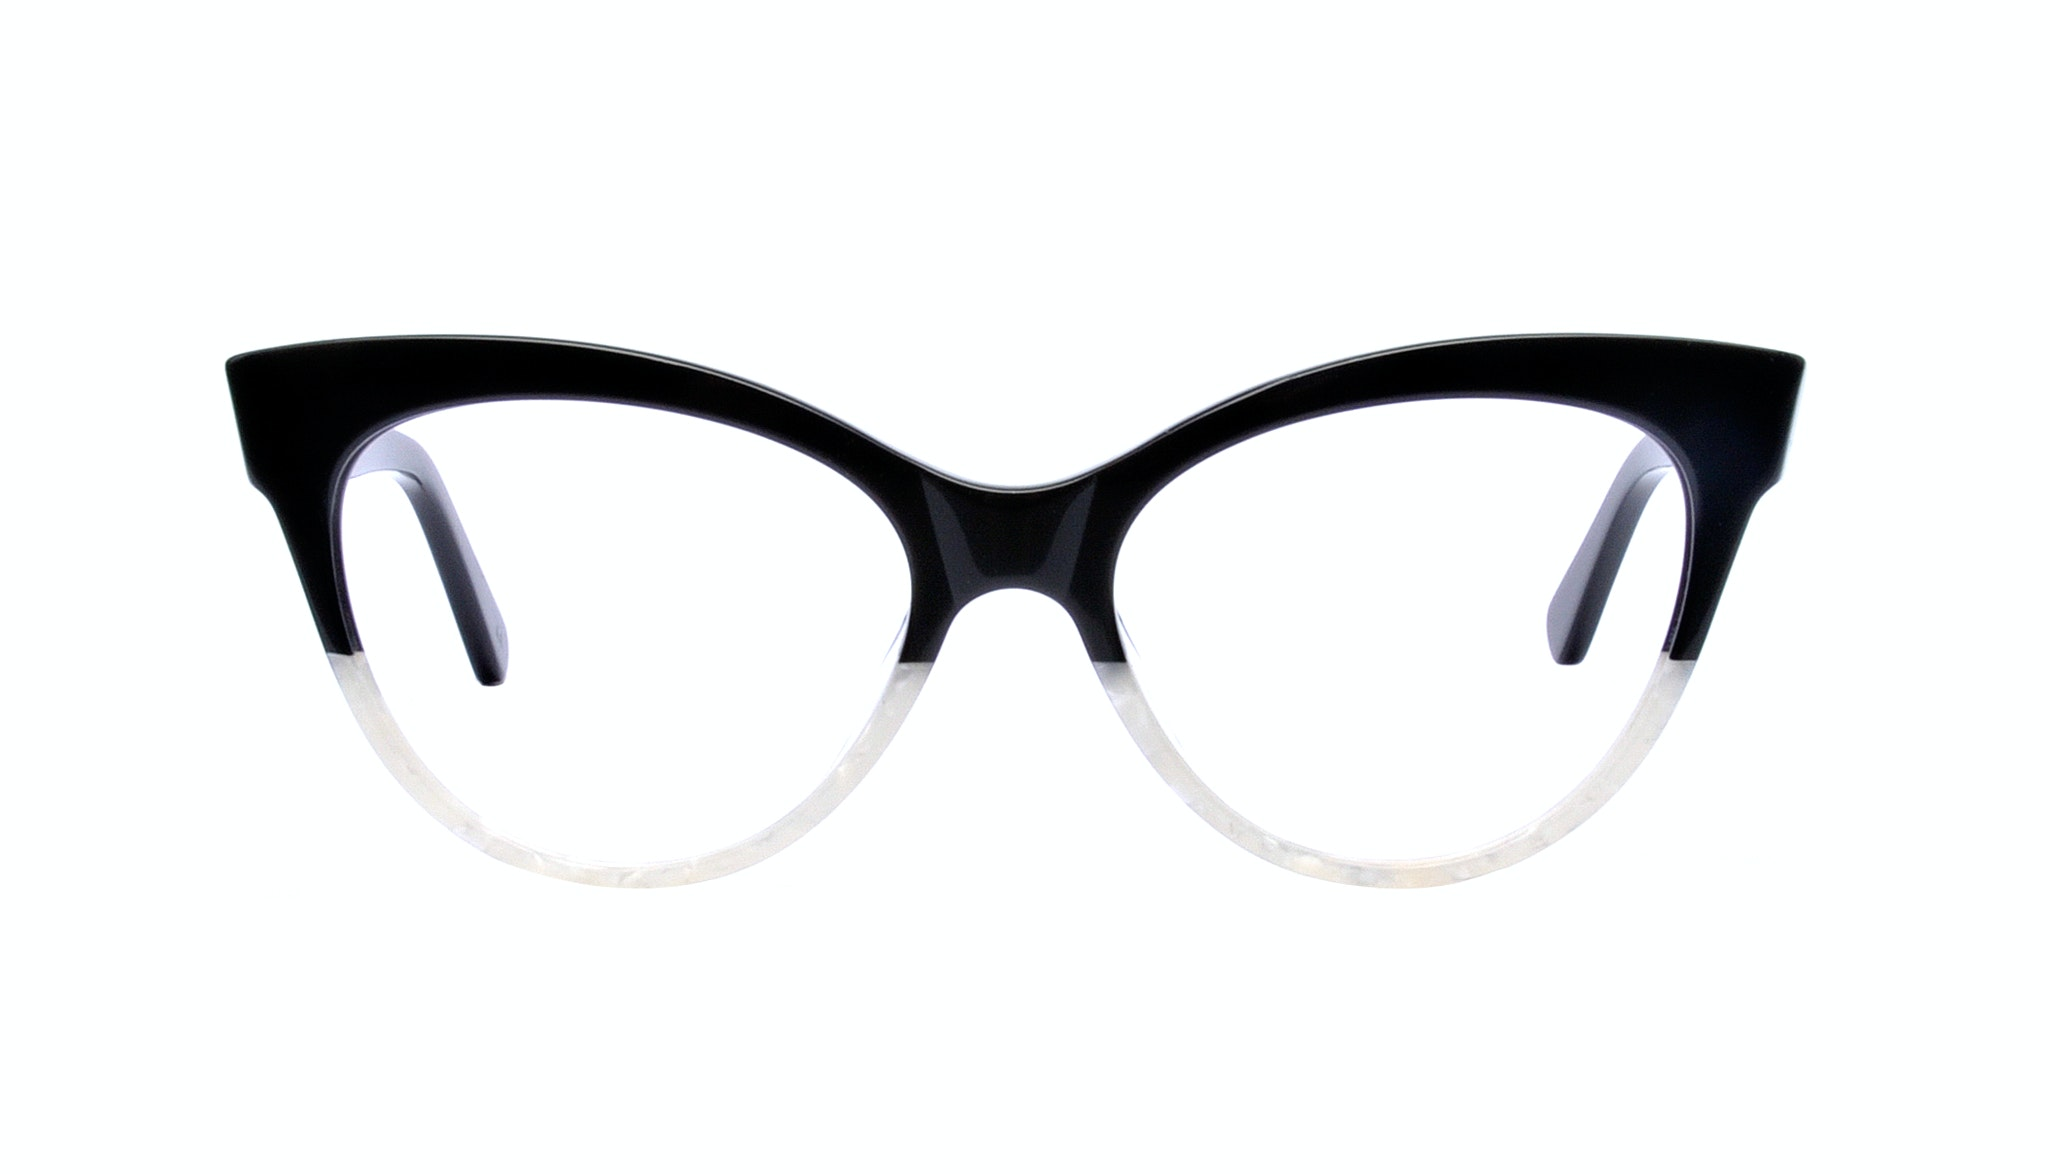 eyeglasses  Women\u0027s Eyeglasses - SkunkBoy in Panda Pearl